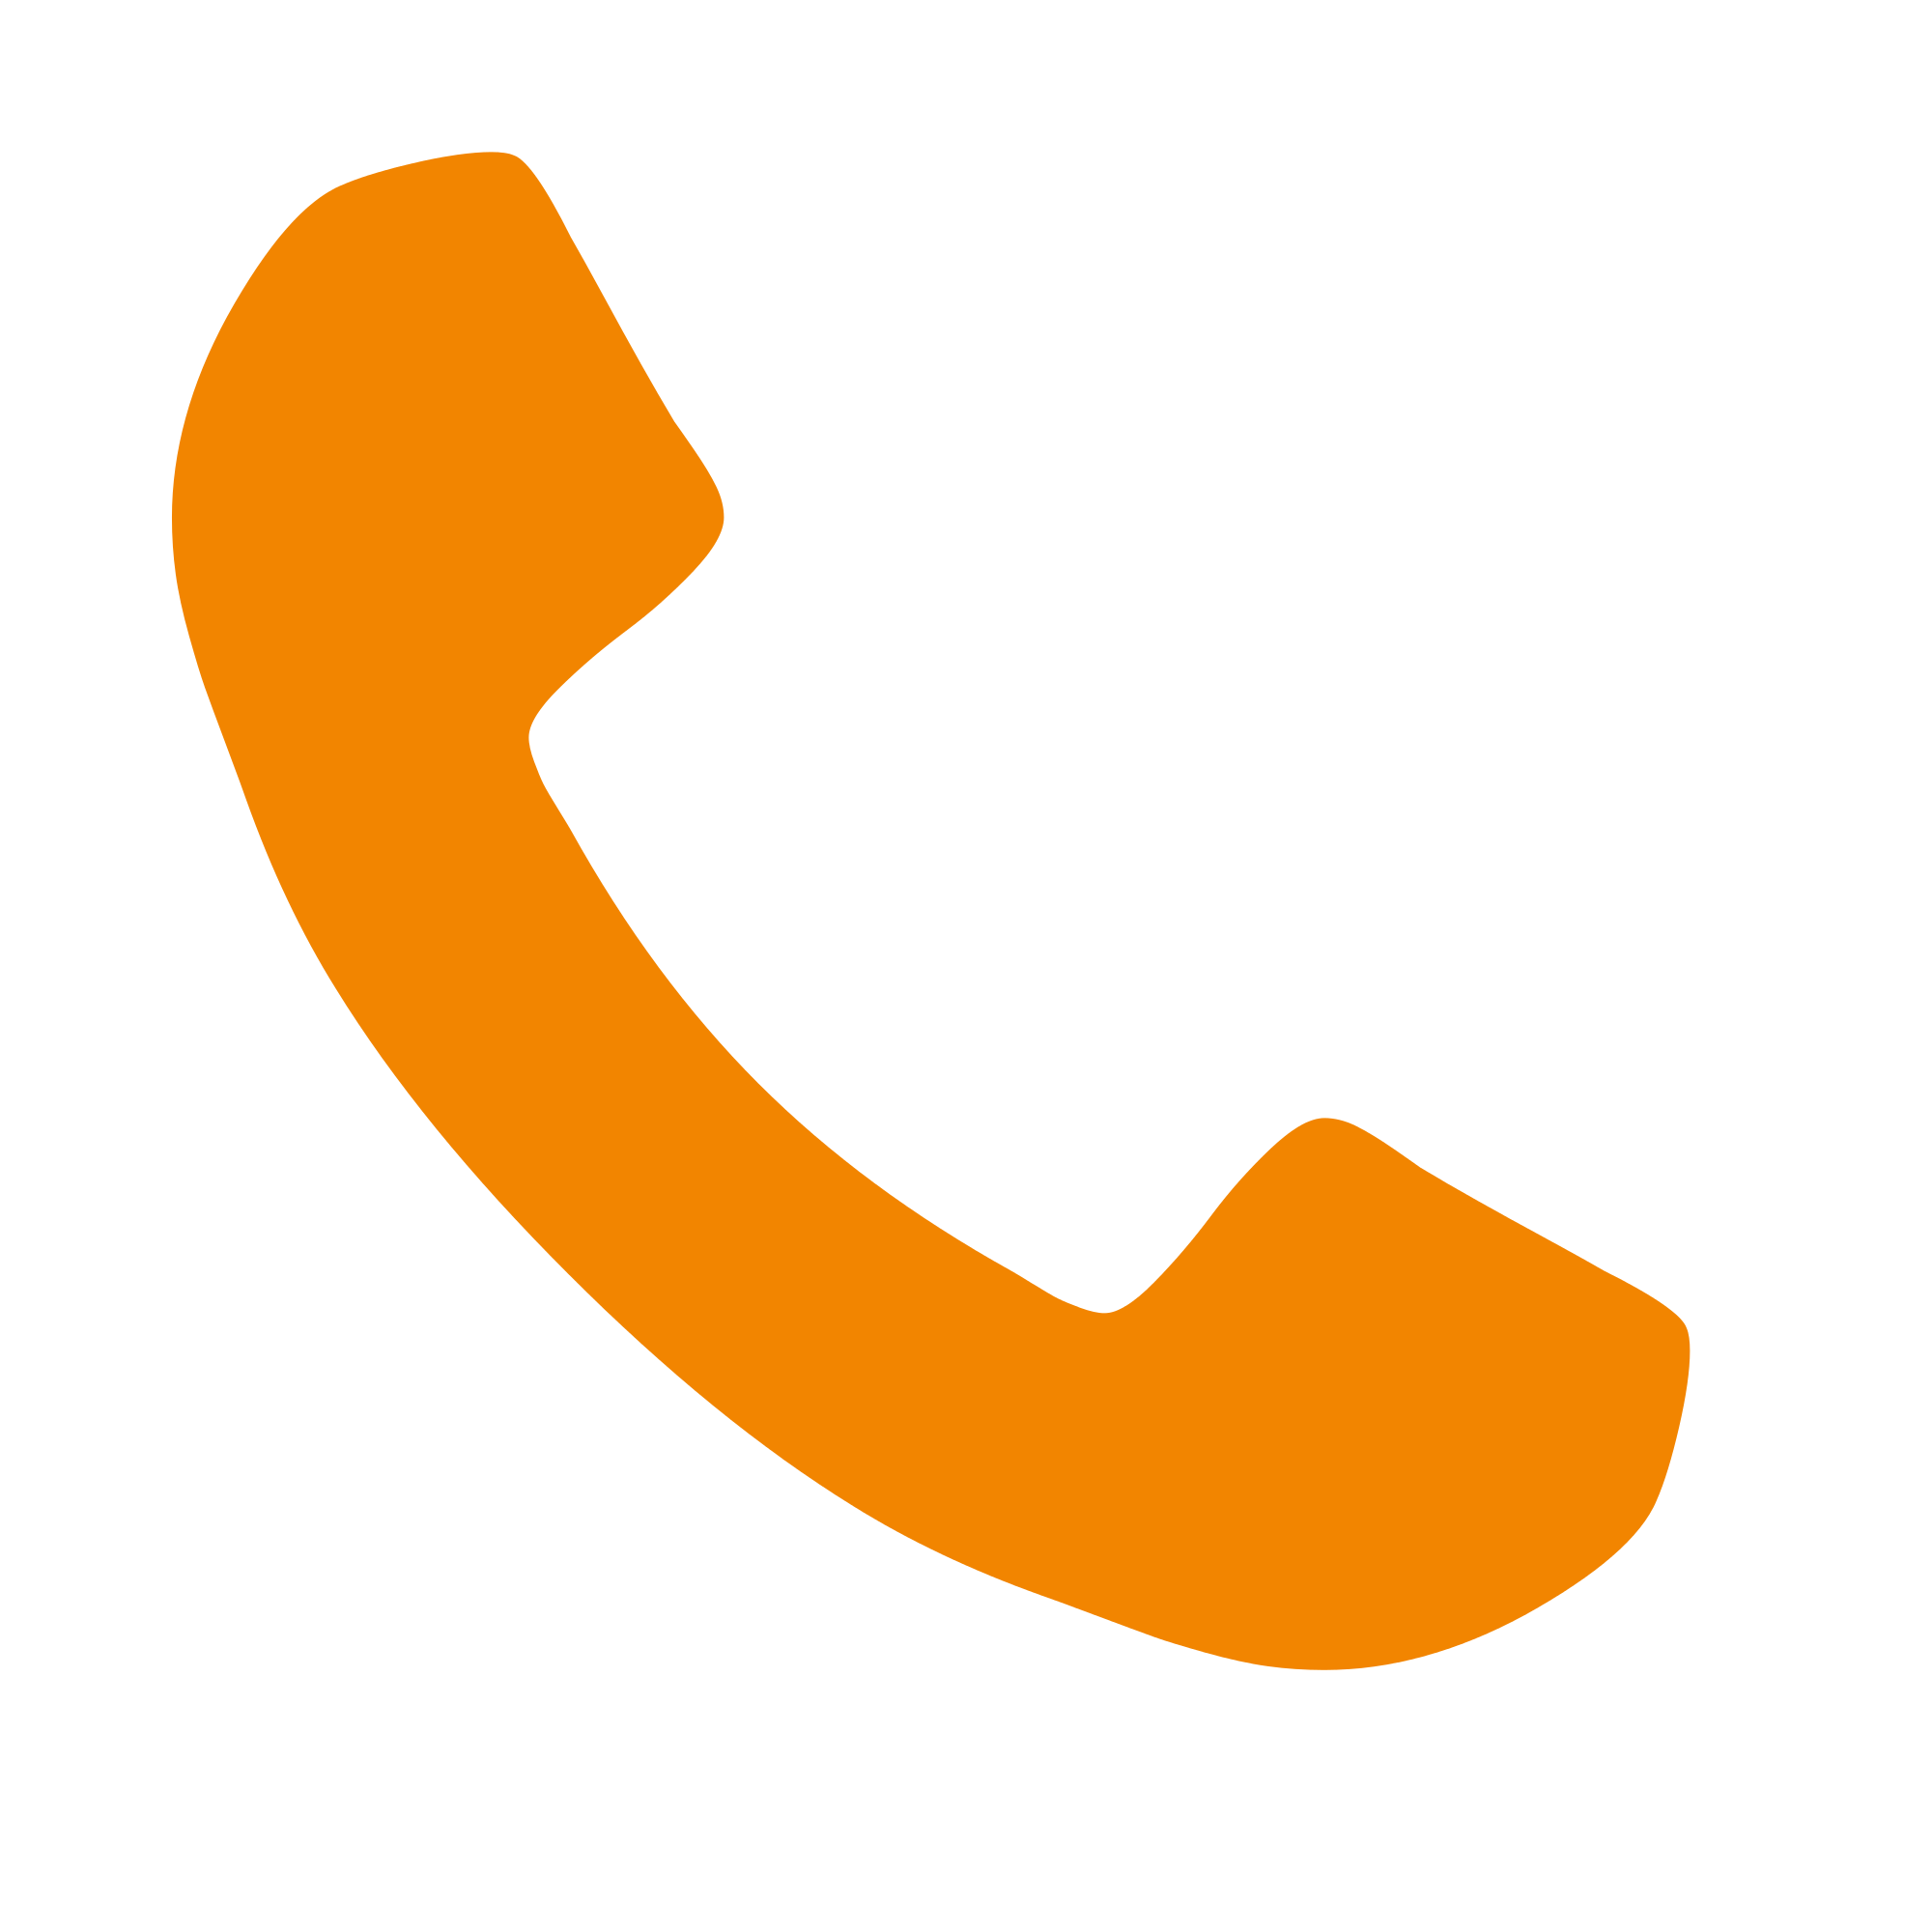 File font awesome svg. Telephone clipart phone orange